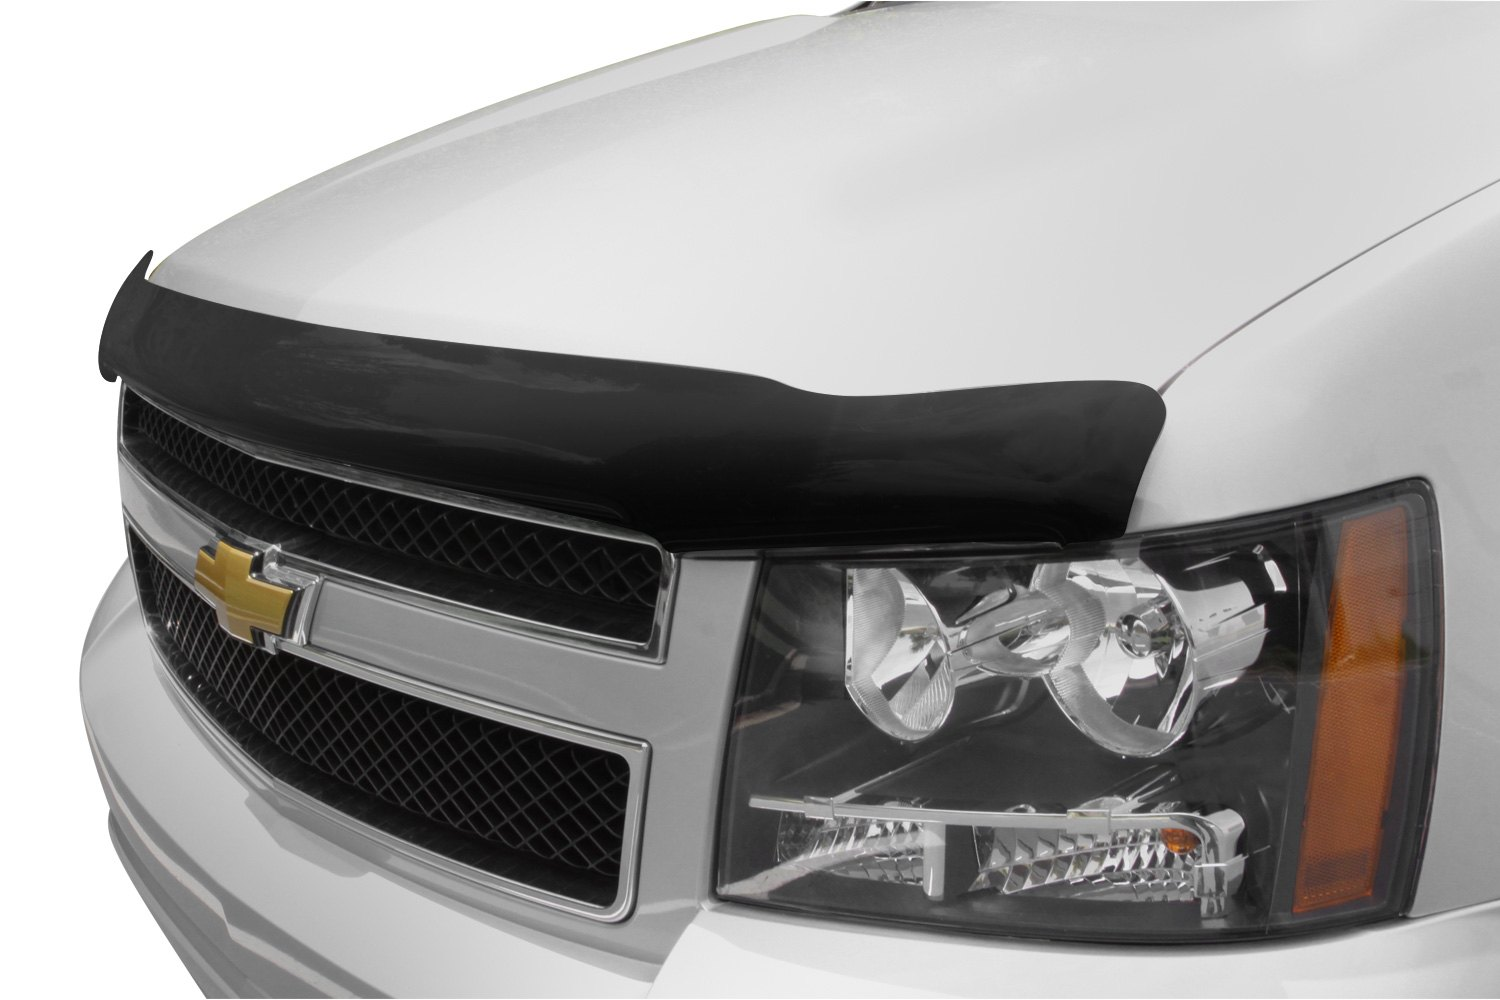 2007-2013 Avalanche Auto Ventshade 23200 Bugflector Dark Smoke Hood Shield for 2007-2014 Chevrolet Tahoe /& Suburban